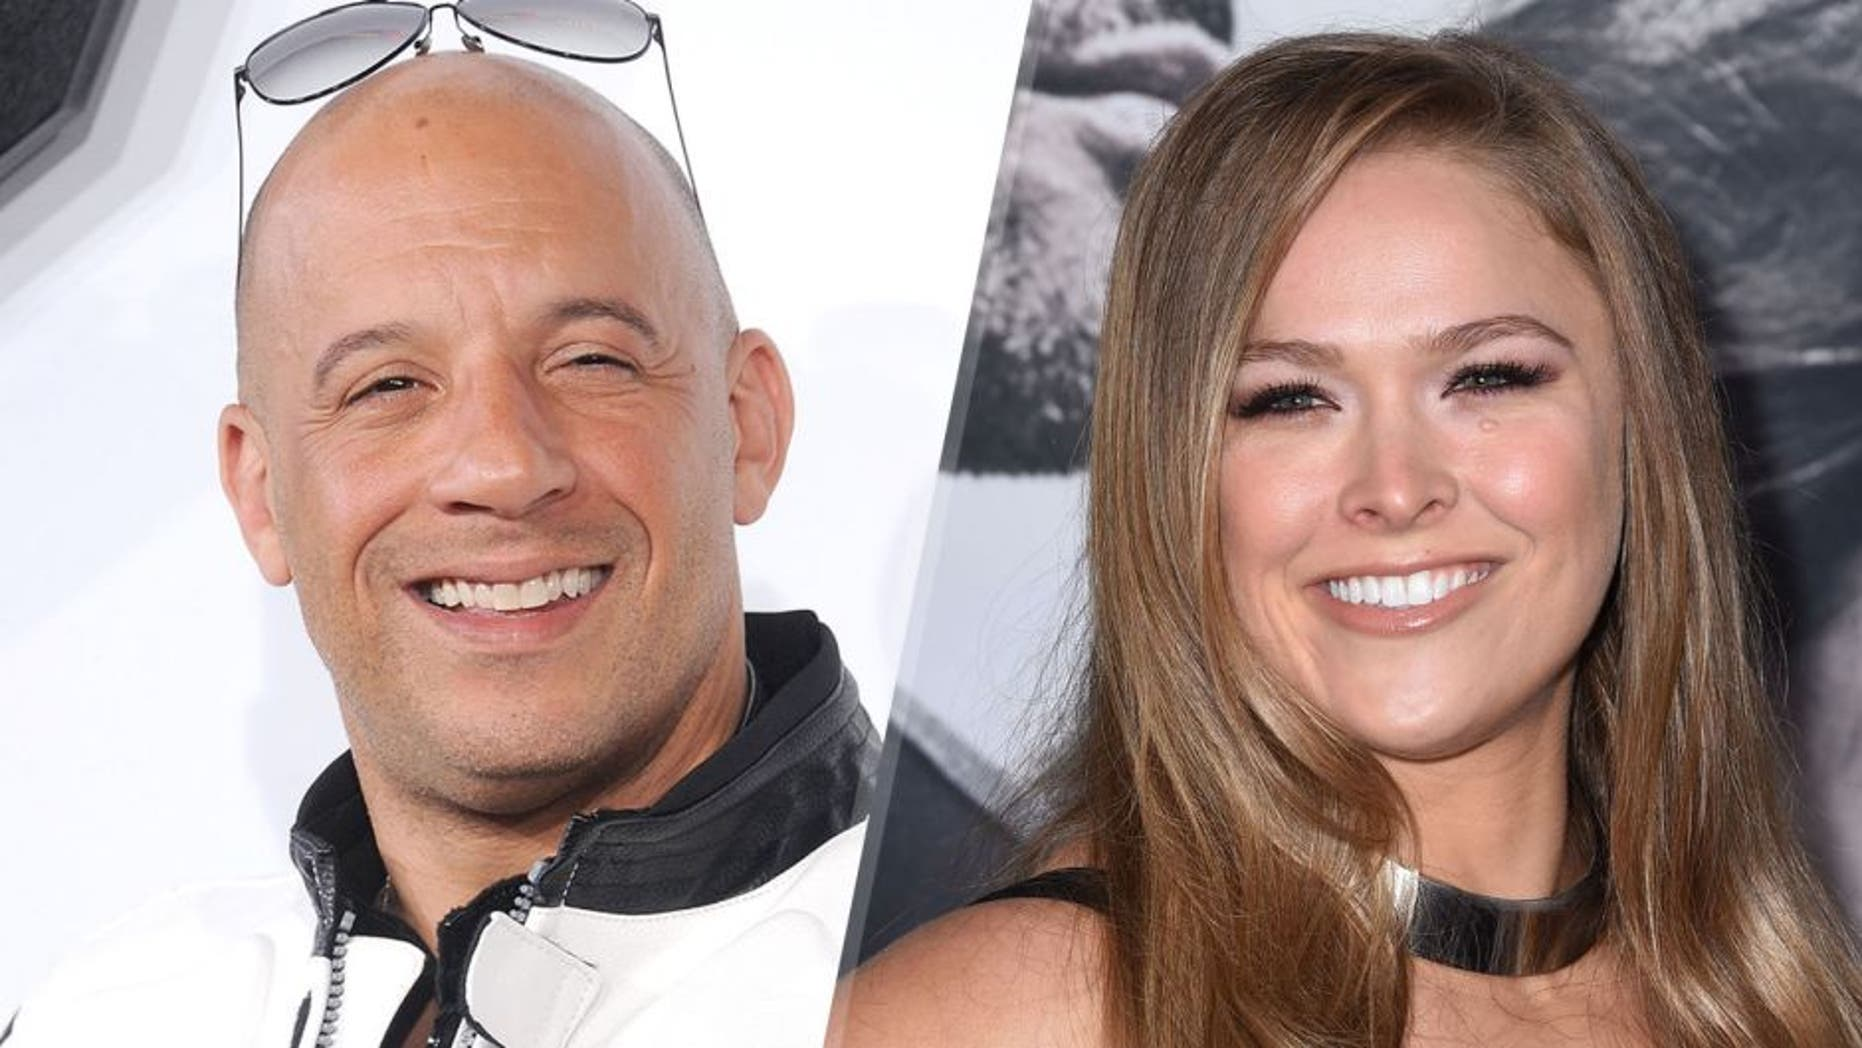 """HOLLYWOOD, CA - APRIL 01: Actor Vin Diesel arrives at the Los Angeles premiere of """"Furious 7"""" at TCL Chinese Theatre IMAX on April 1, 2015 in Hollywood, California. (Photo by Gregg DeGuire/WireImage), HOLLYWOOD, CA - APRIL 01: Ronda Rousey arrvies at the """"Furious 7"""" - Los Angeles Premiere at TCL Chinese Theatre IMAX on April 1, 2015 in Hollywood, California. (Photo by Steve Granitz/WireImage)"""